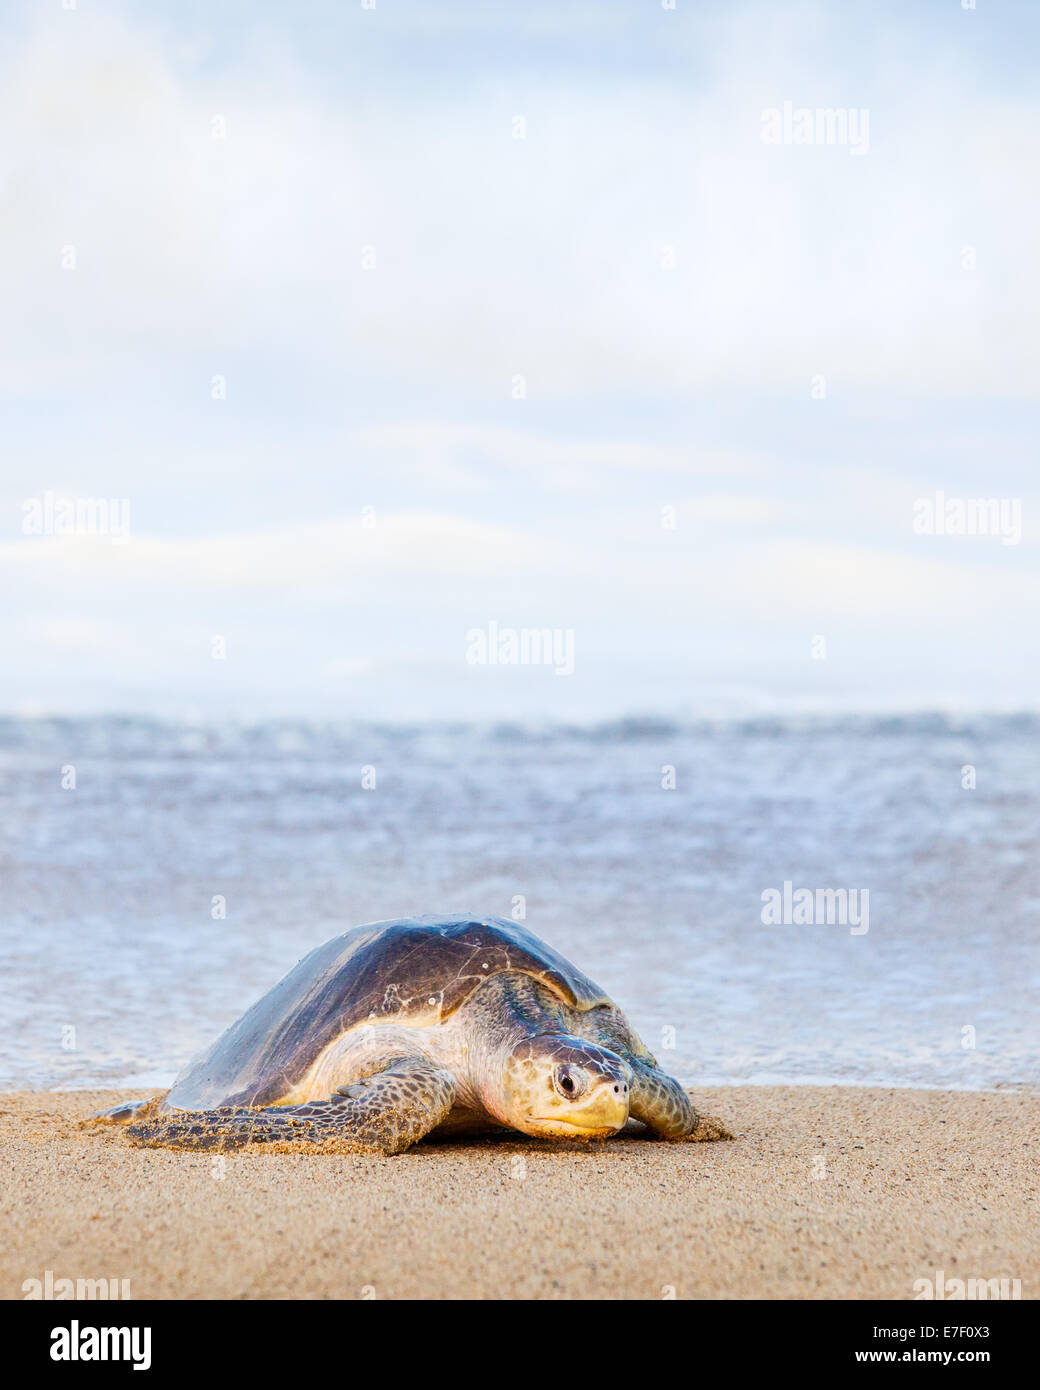 Adult Olive Ridley turtle drags itself ashore to lay eggs on the beach at Ixtapilla, Michoacan, Mexico. - Stock Image